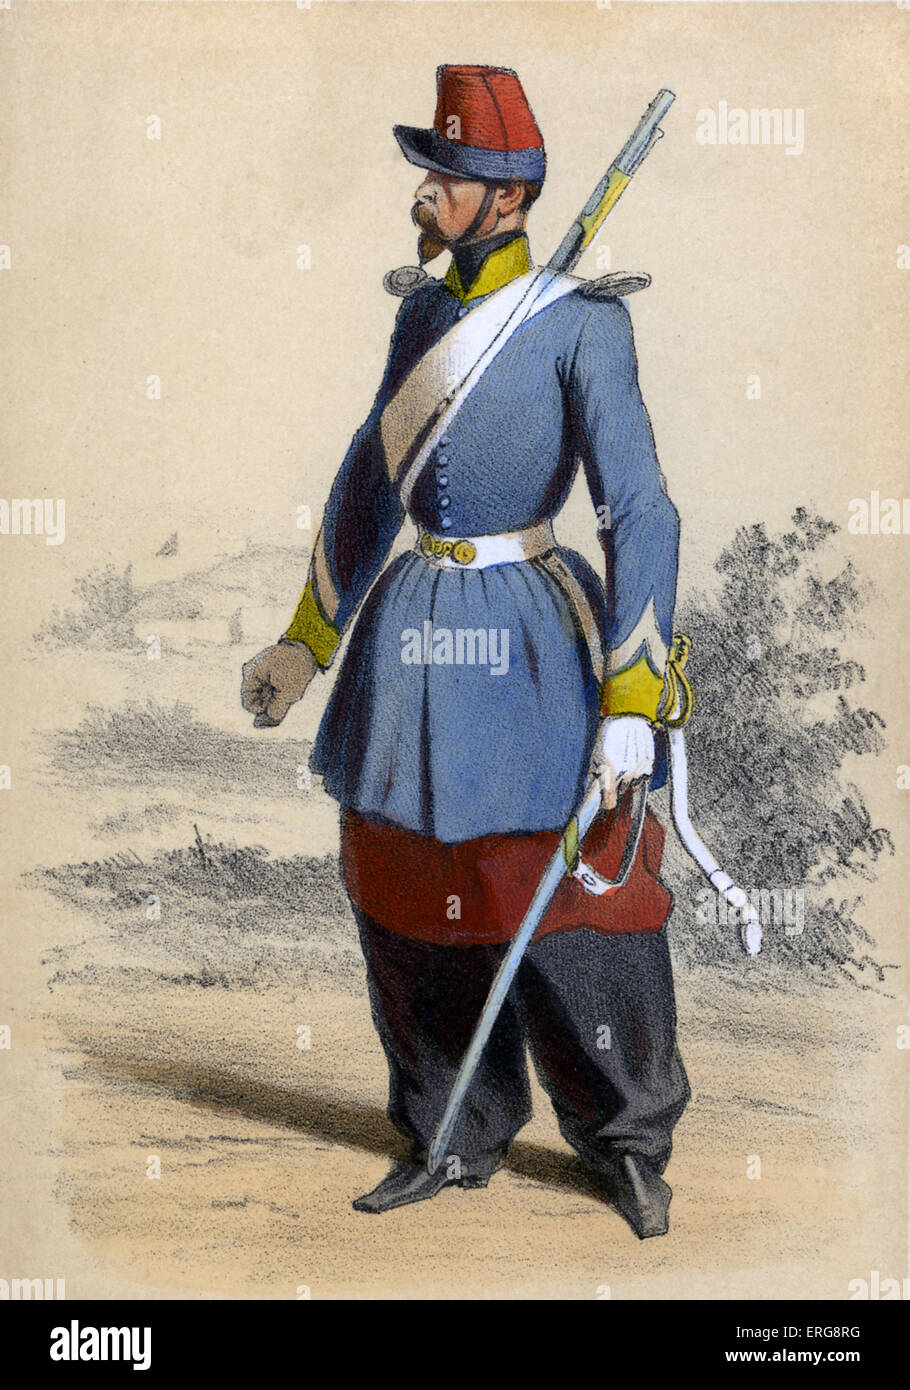 Chasseur d'Afrique: member of the Army of Africa (Armée d'Afrique), referring to those portions of the - Stock Image